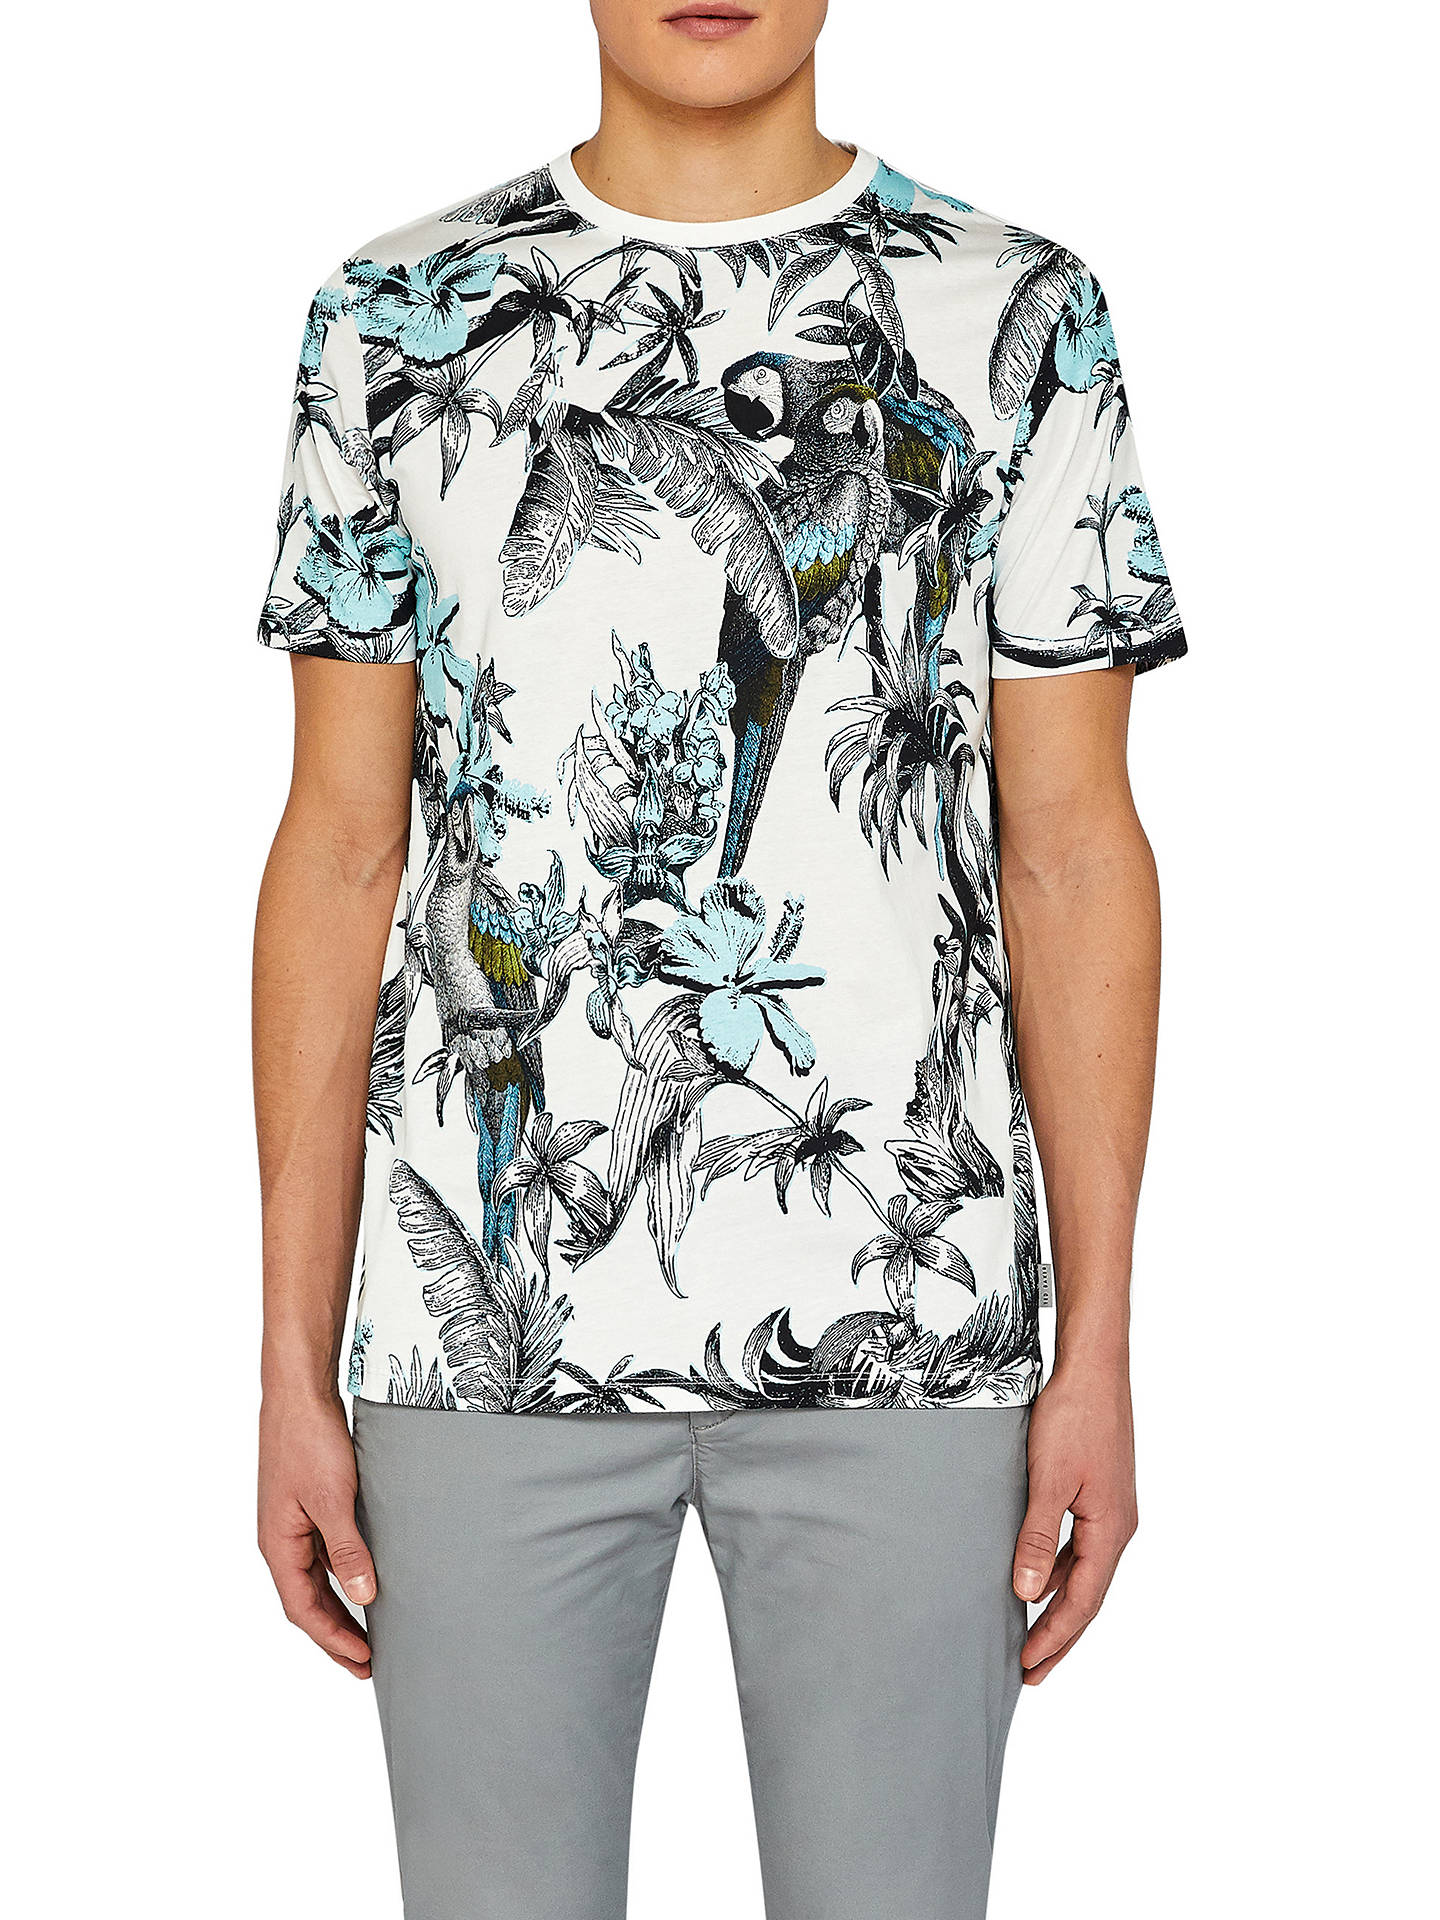 2951cc6798938e Ted Baker Plutto Printed T-Shirt at John Lewis   Partners